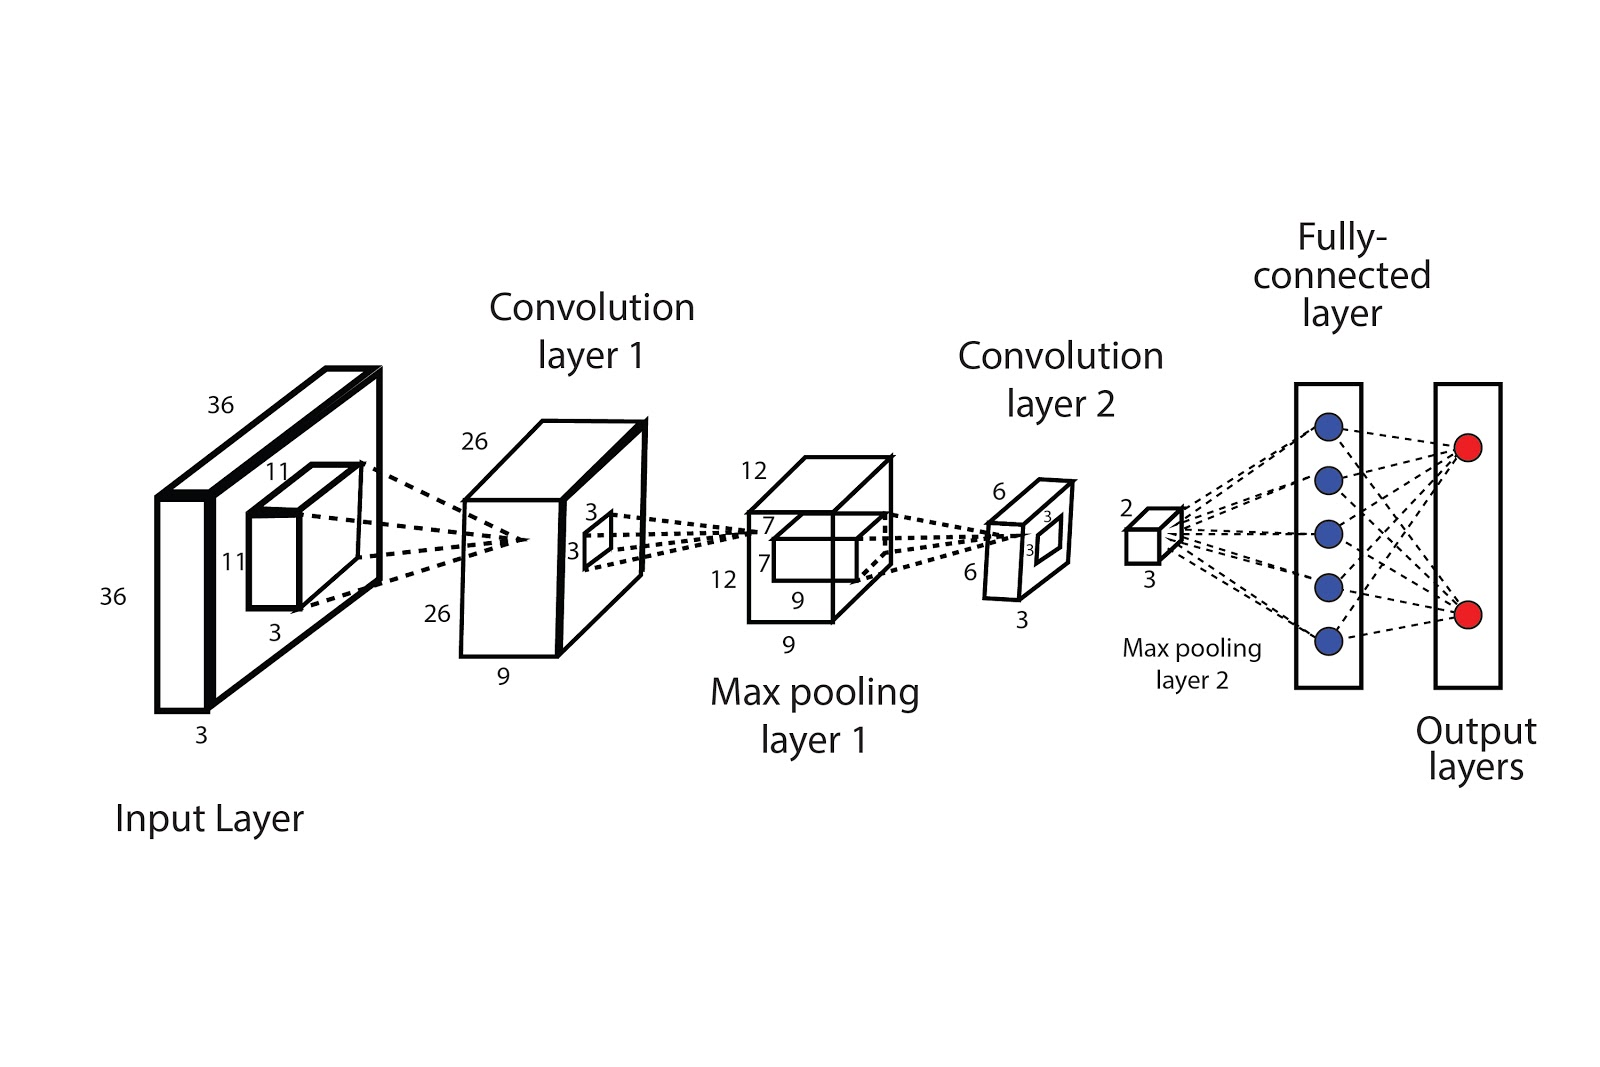 Architecture of convolutional neural network with two convolutional layer